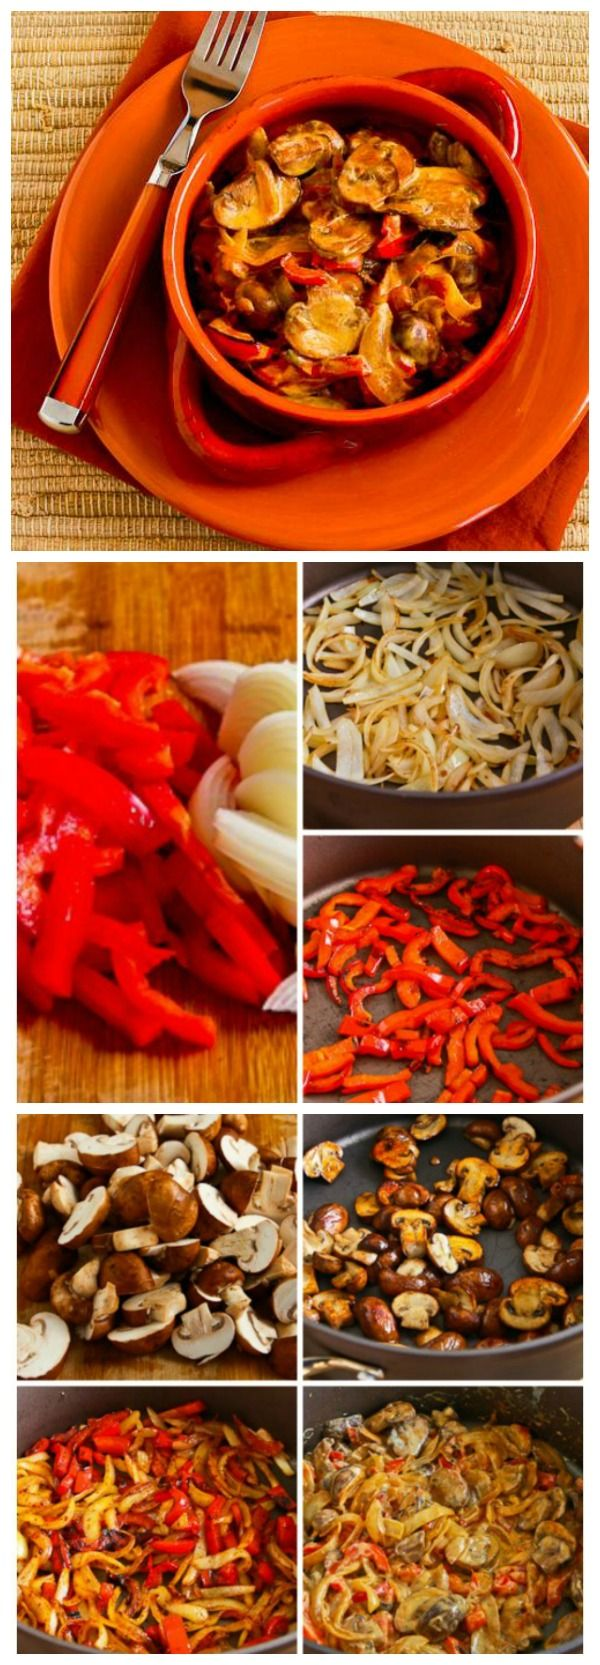 This Vegetarian Mushroom Stew with Red Bell Pepper, Onion, and Paprika is delicious for a #MeatlessMonday main dish or delicious side dish.  [found on KalynsKitchen.com]